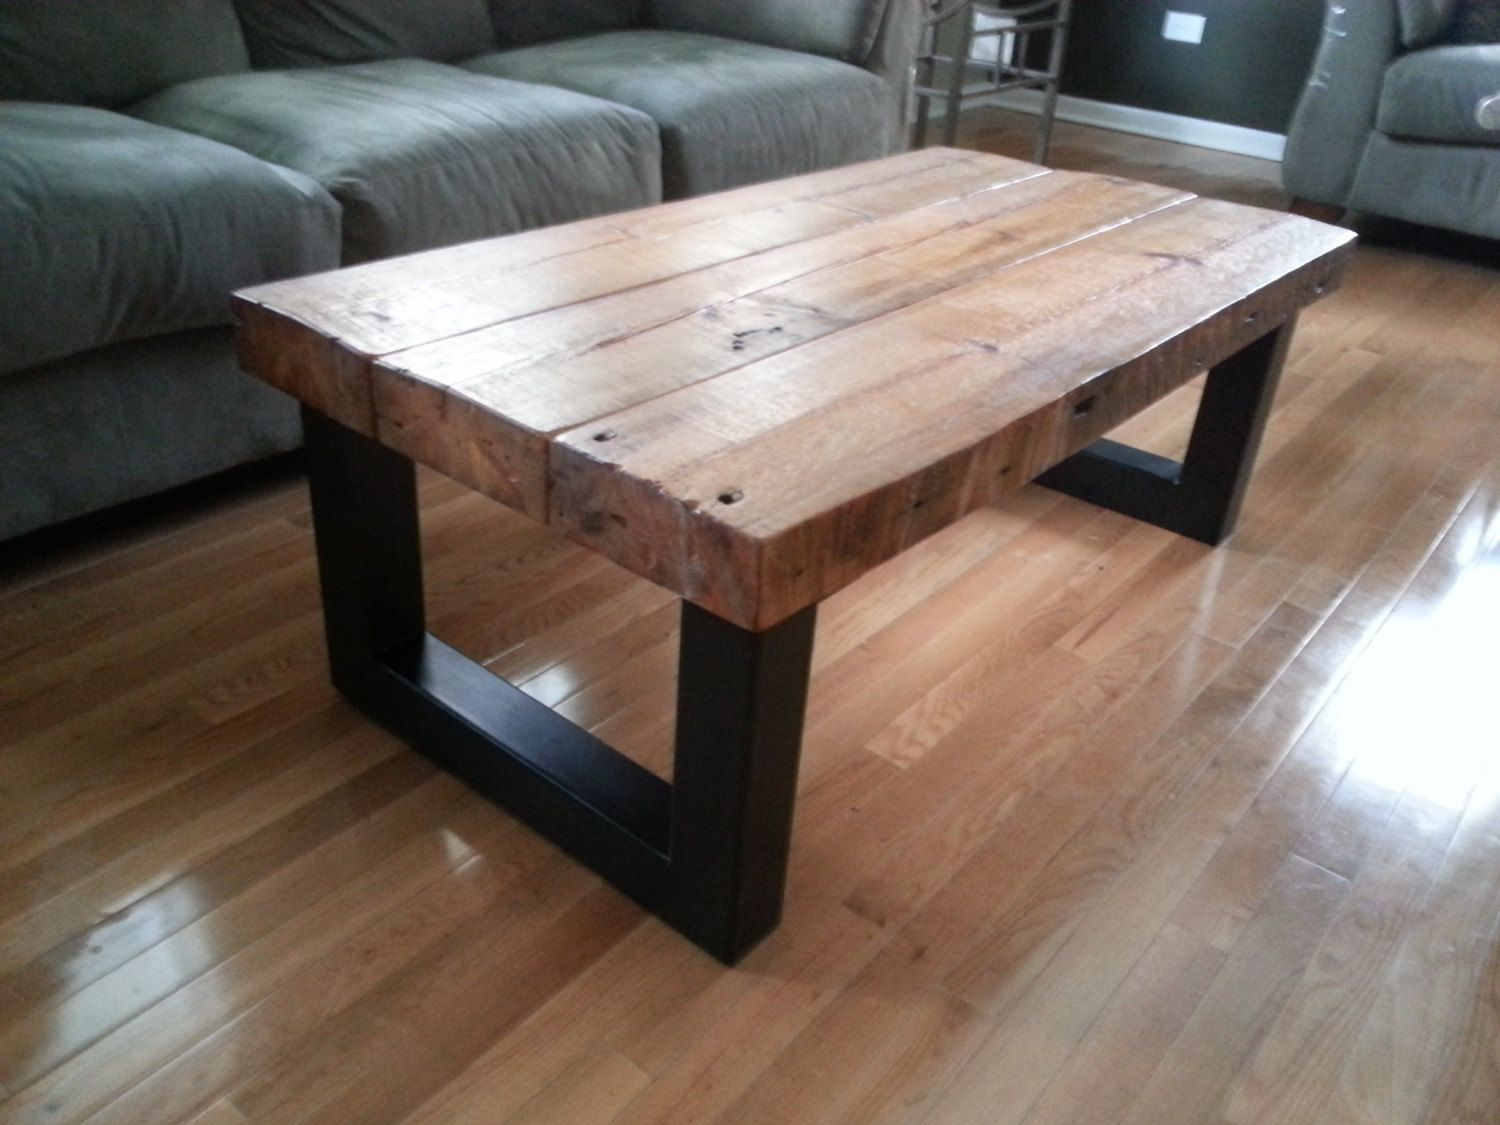 Barnwood Coffee Table Custom Metal Base Rustic By Burntrock Beauty Beauty Beauty